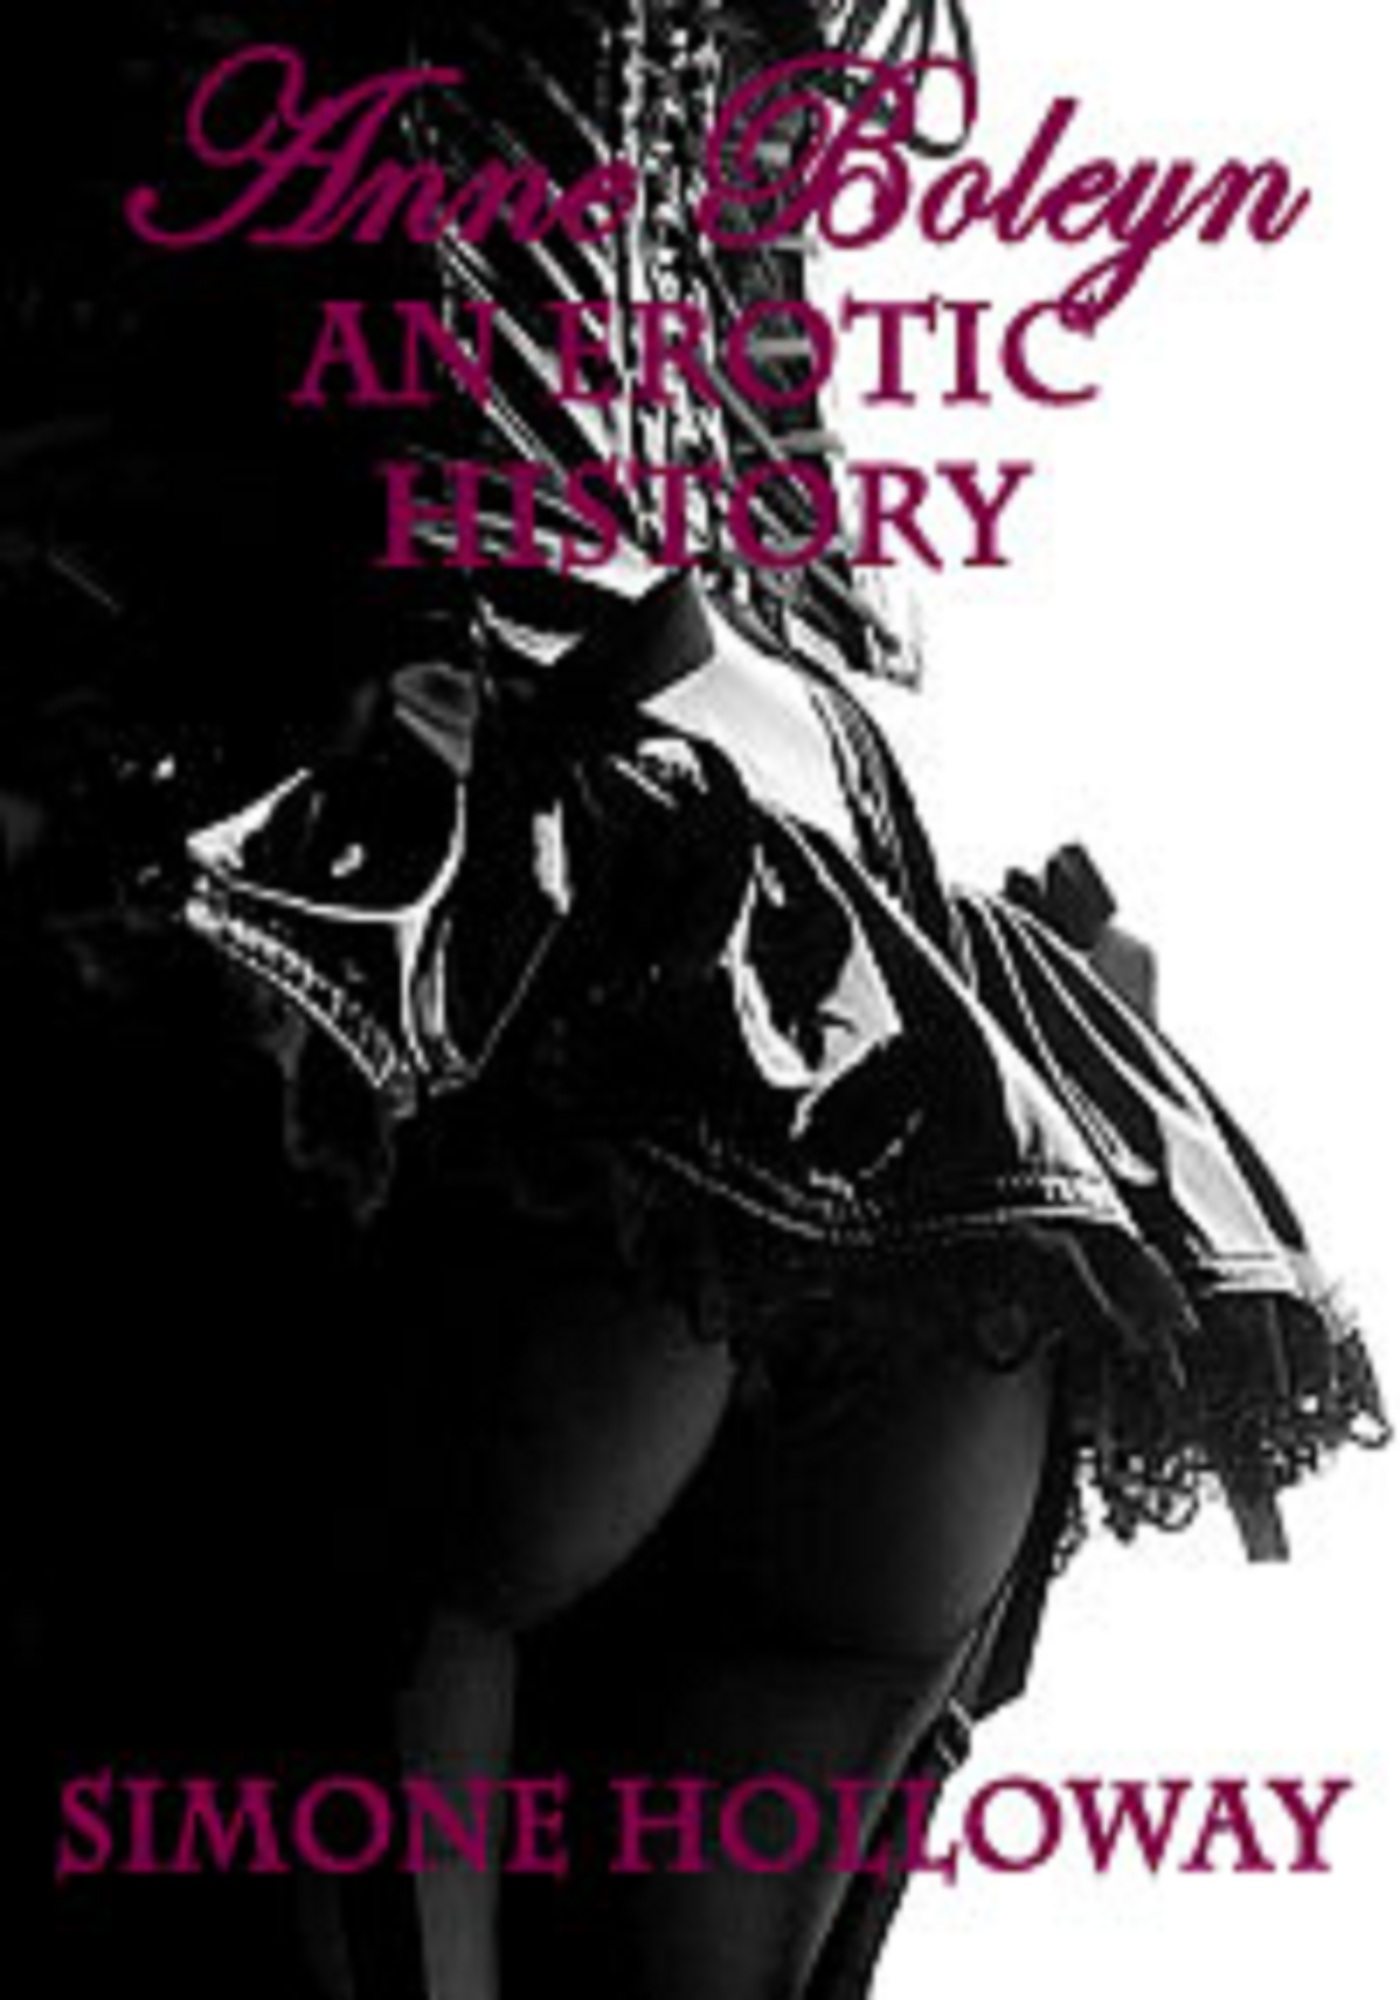 Anne Boleyn: An Erotic History